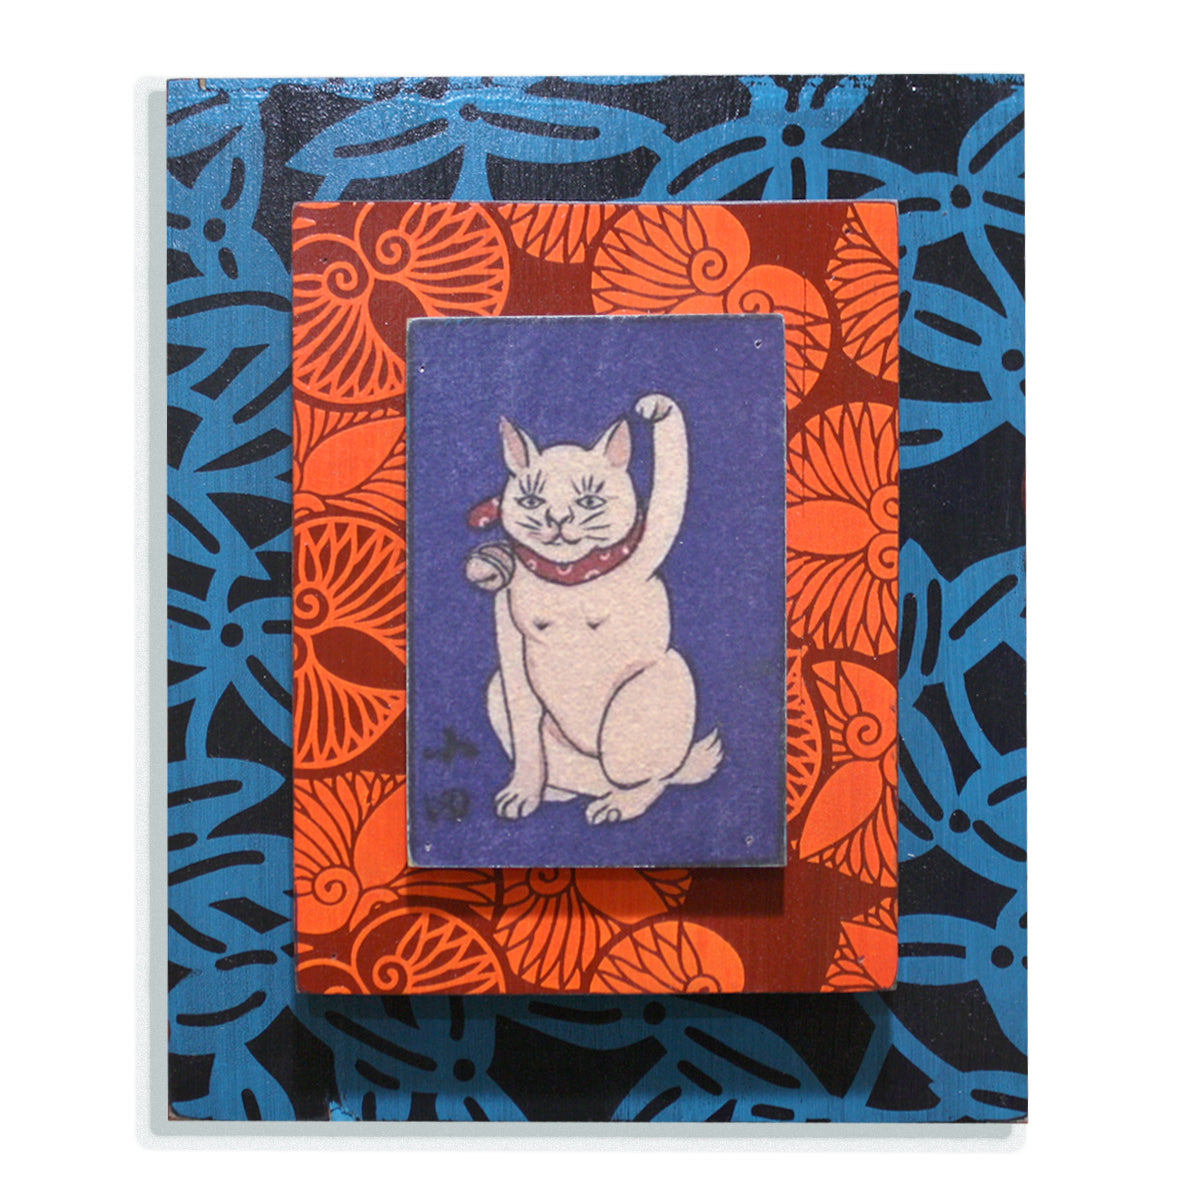 Blue Neko Cat on orange and blue